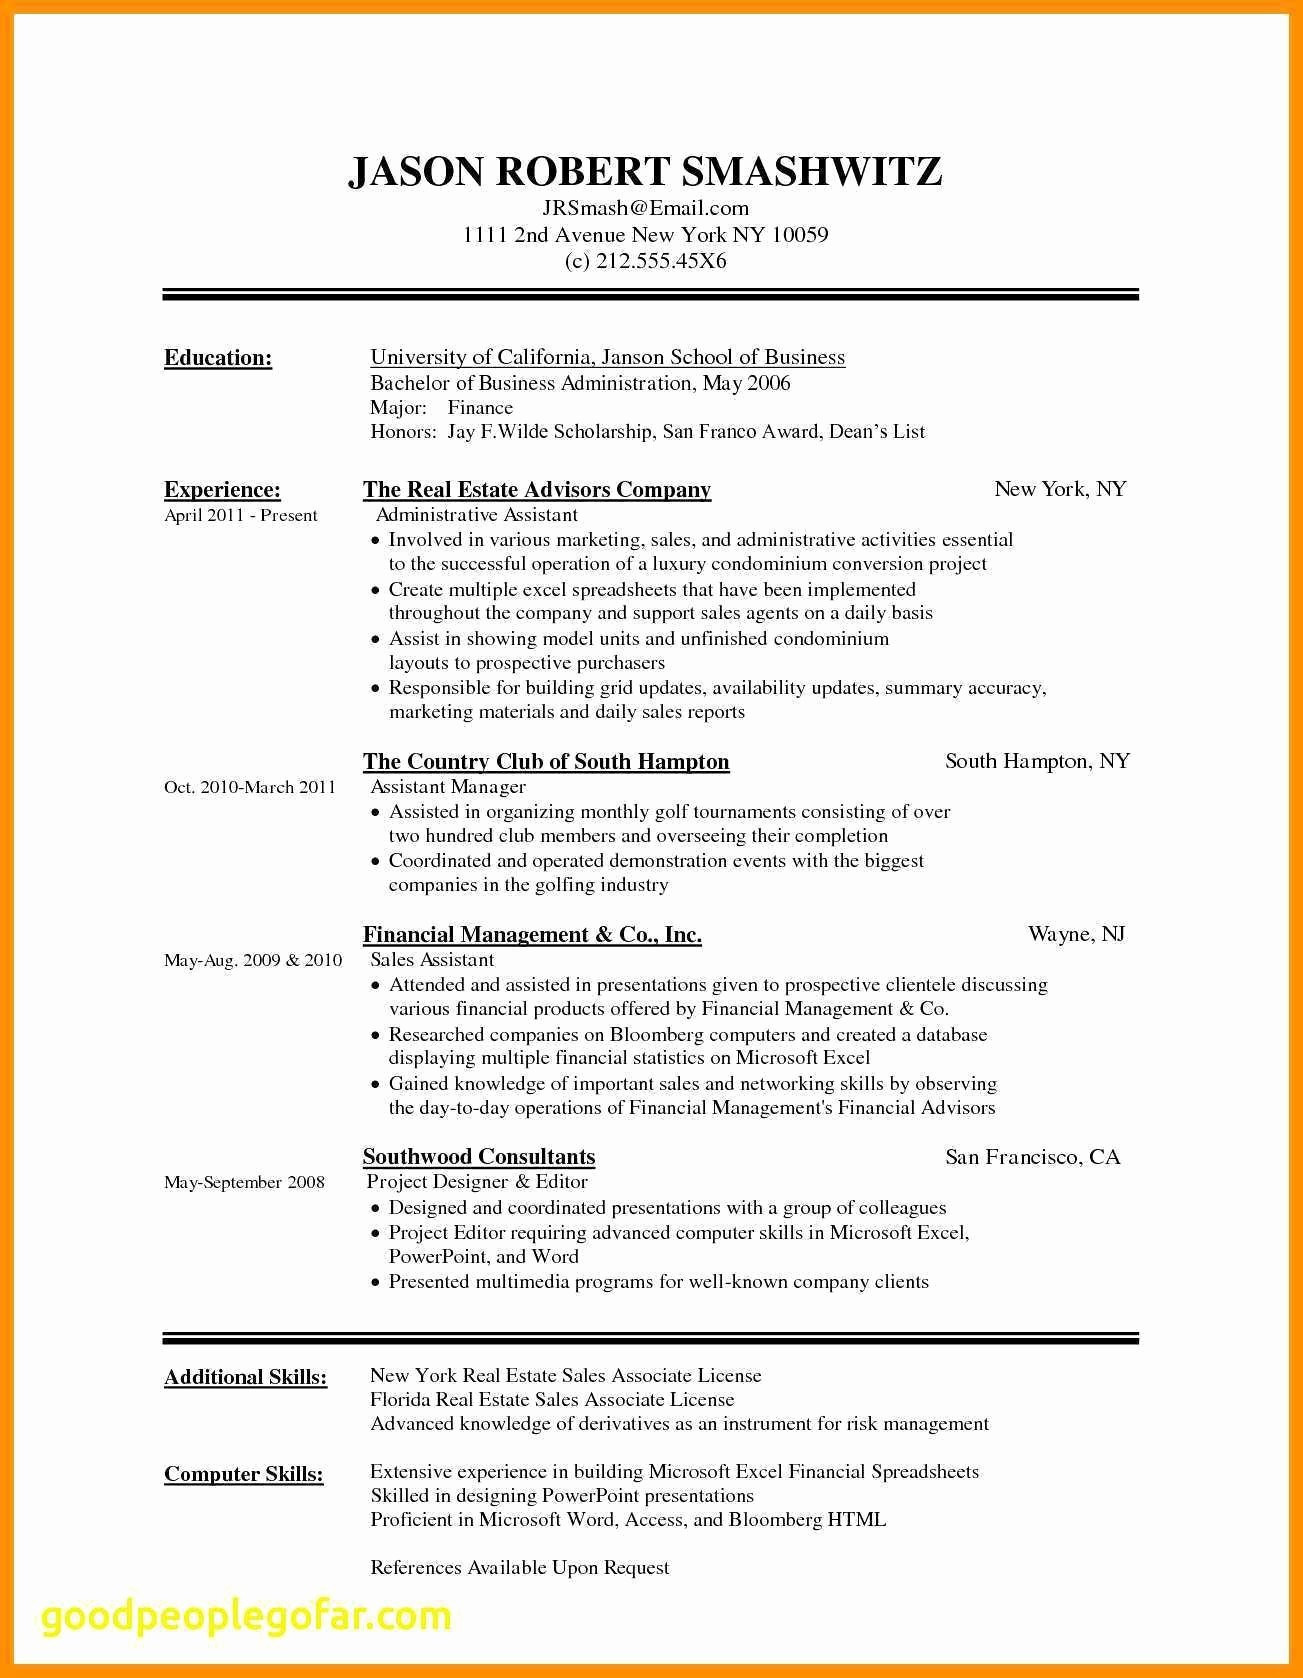 Film Resume Template - Resume Template Beautiful Word Template for Resume Resume Word